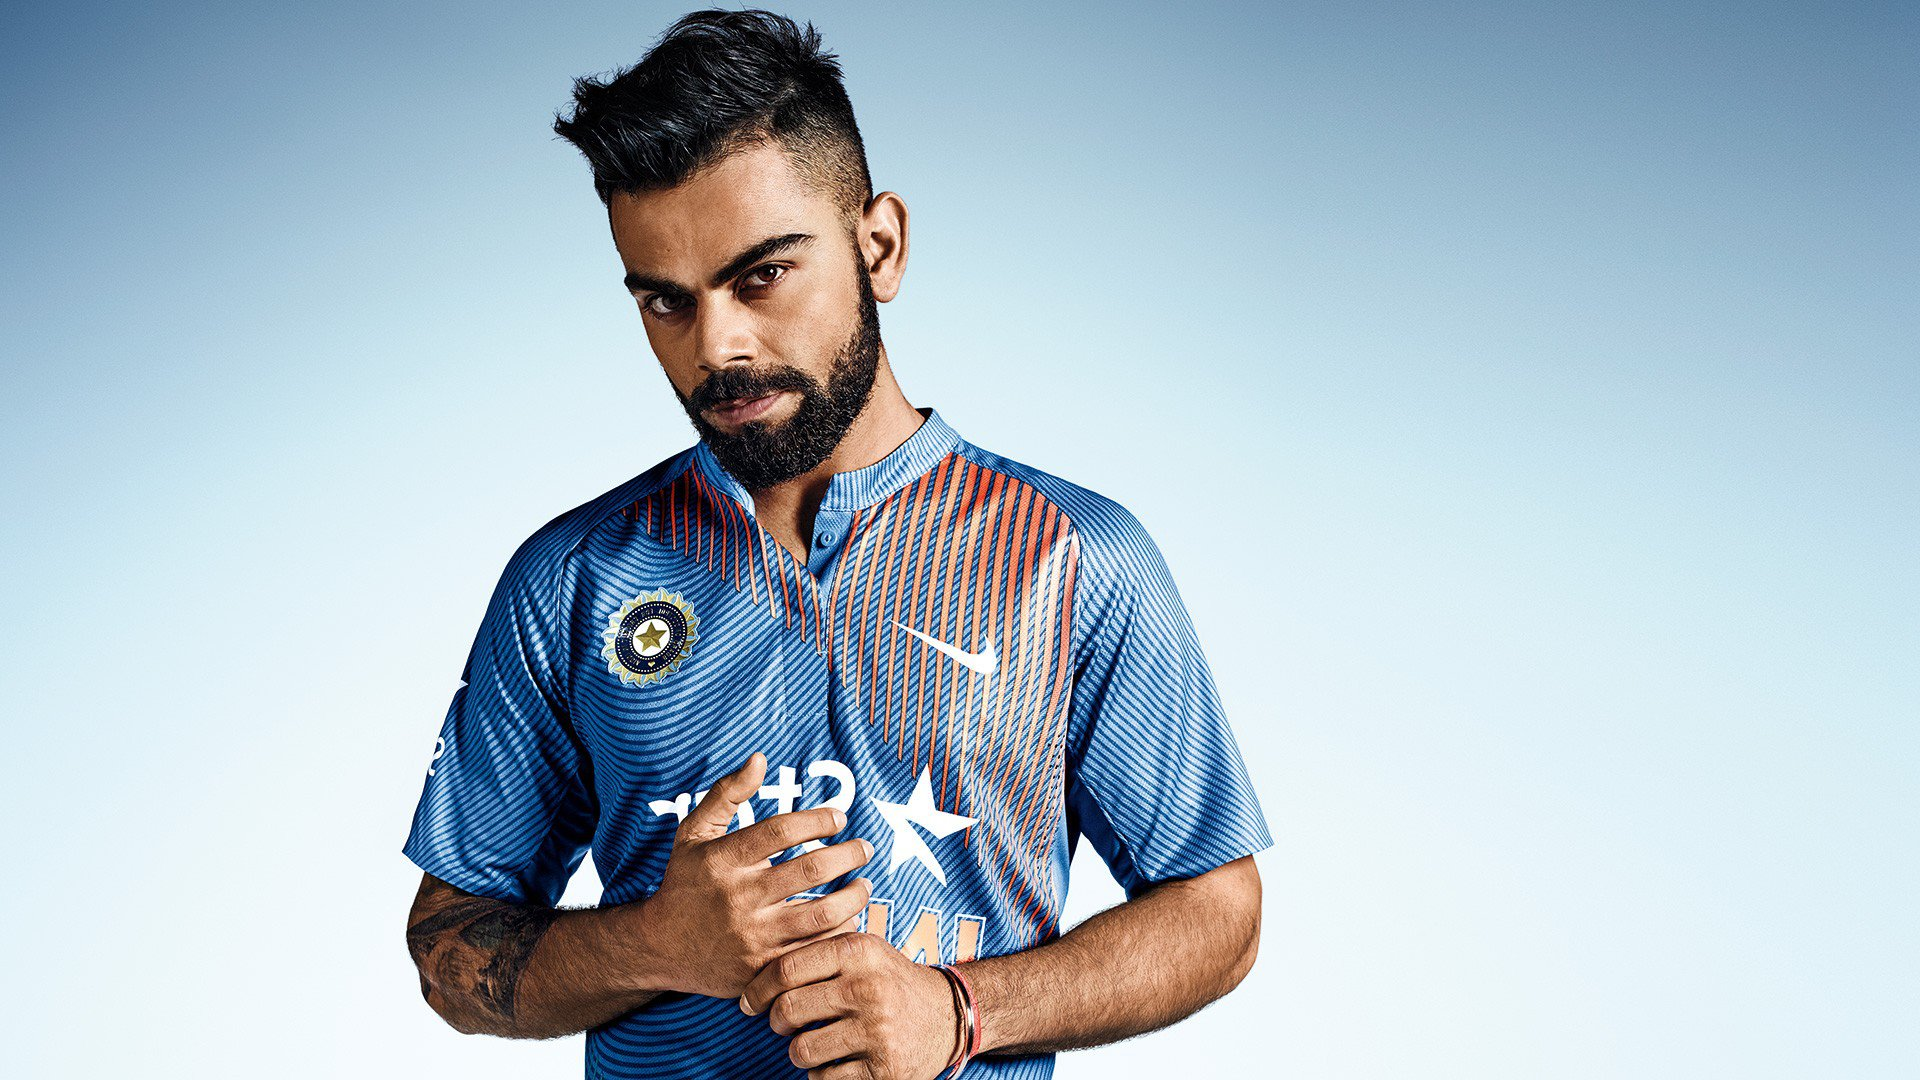 1920x1080 Virat Kohli Laptop Full Hd 1080p Hd 4k Wallpapers Images